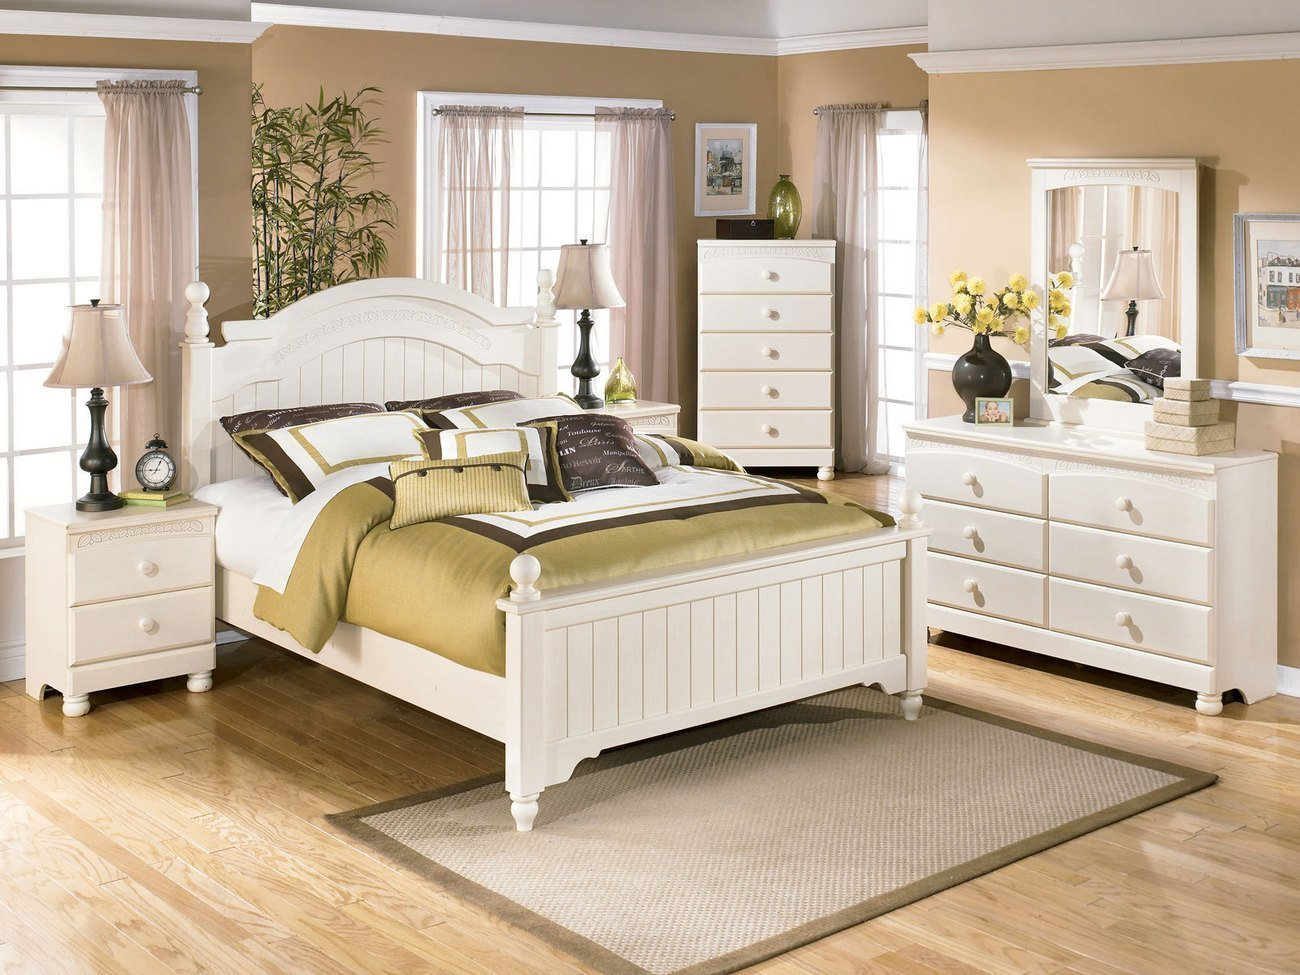 Best Cream And Grey Bedroom What Accent Color Goes With Cream With Pictures